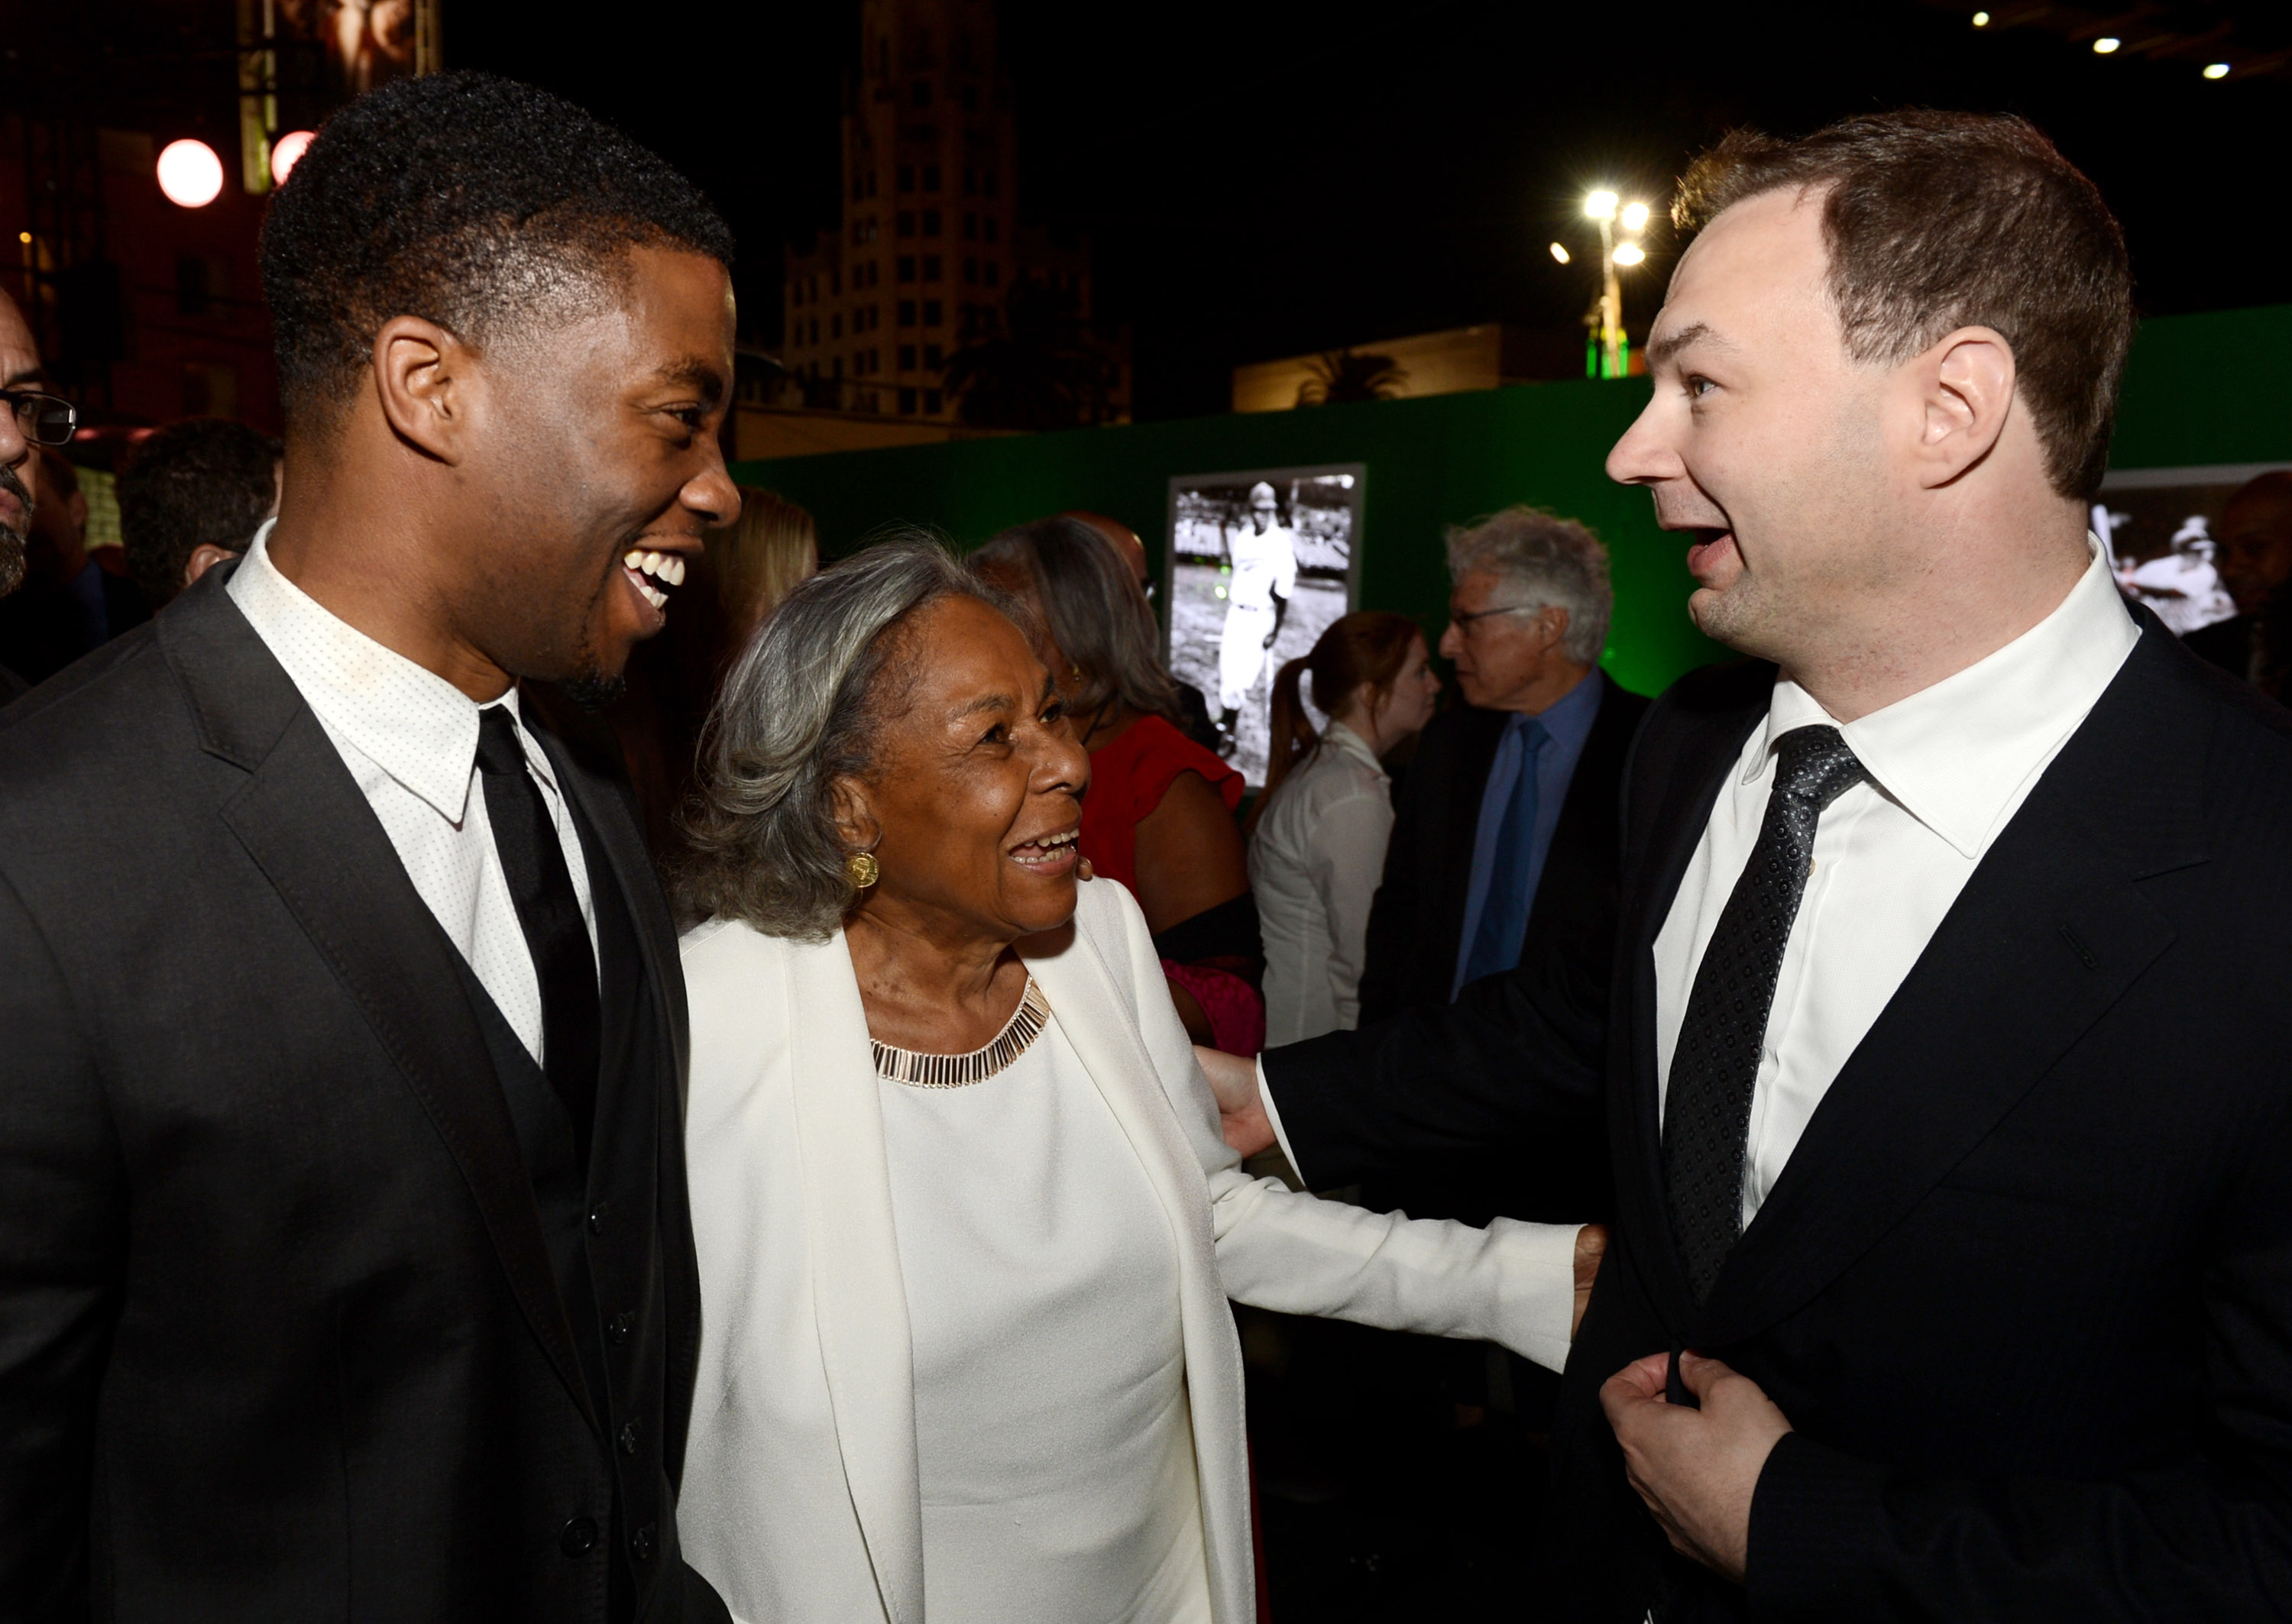 Chadwick Boseman, Jackie Robinson's widow, and Thomas Tull